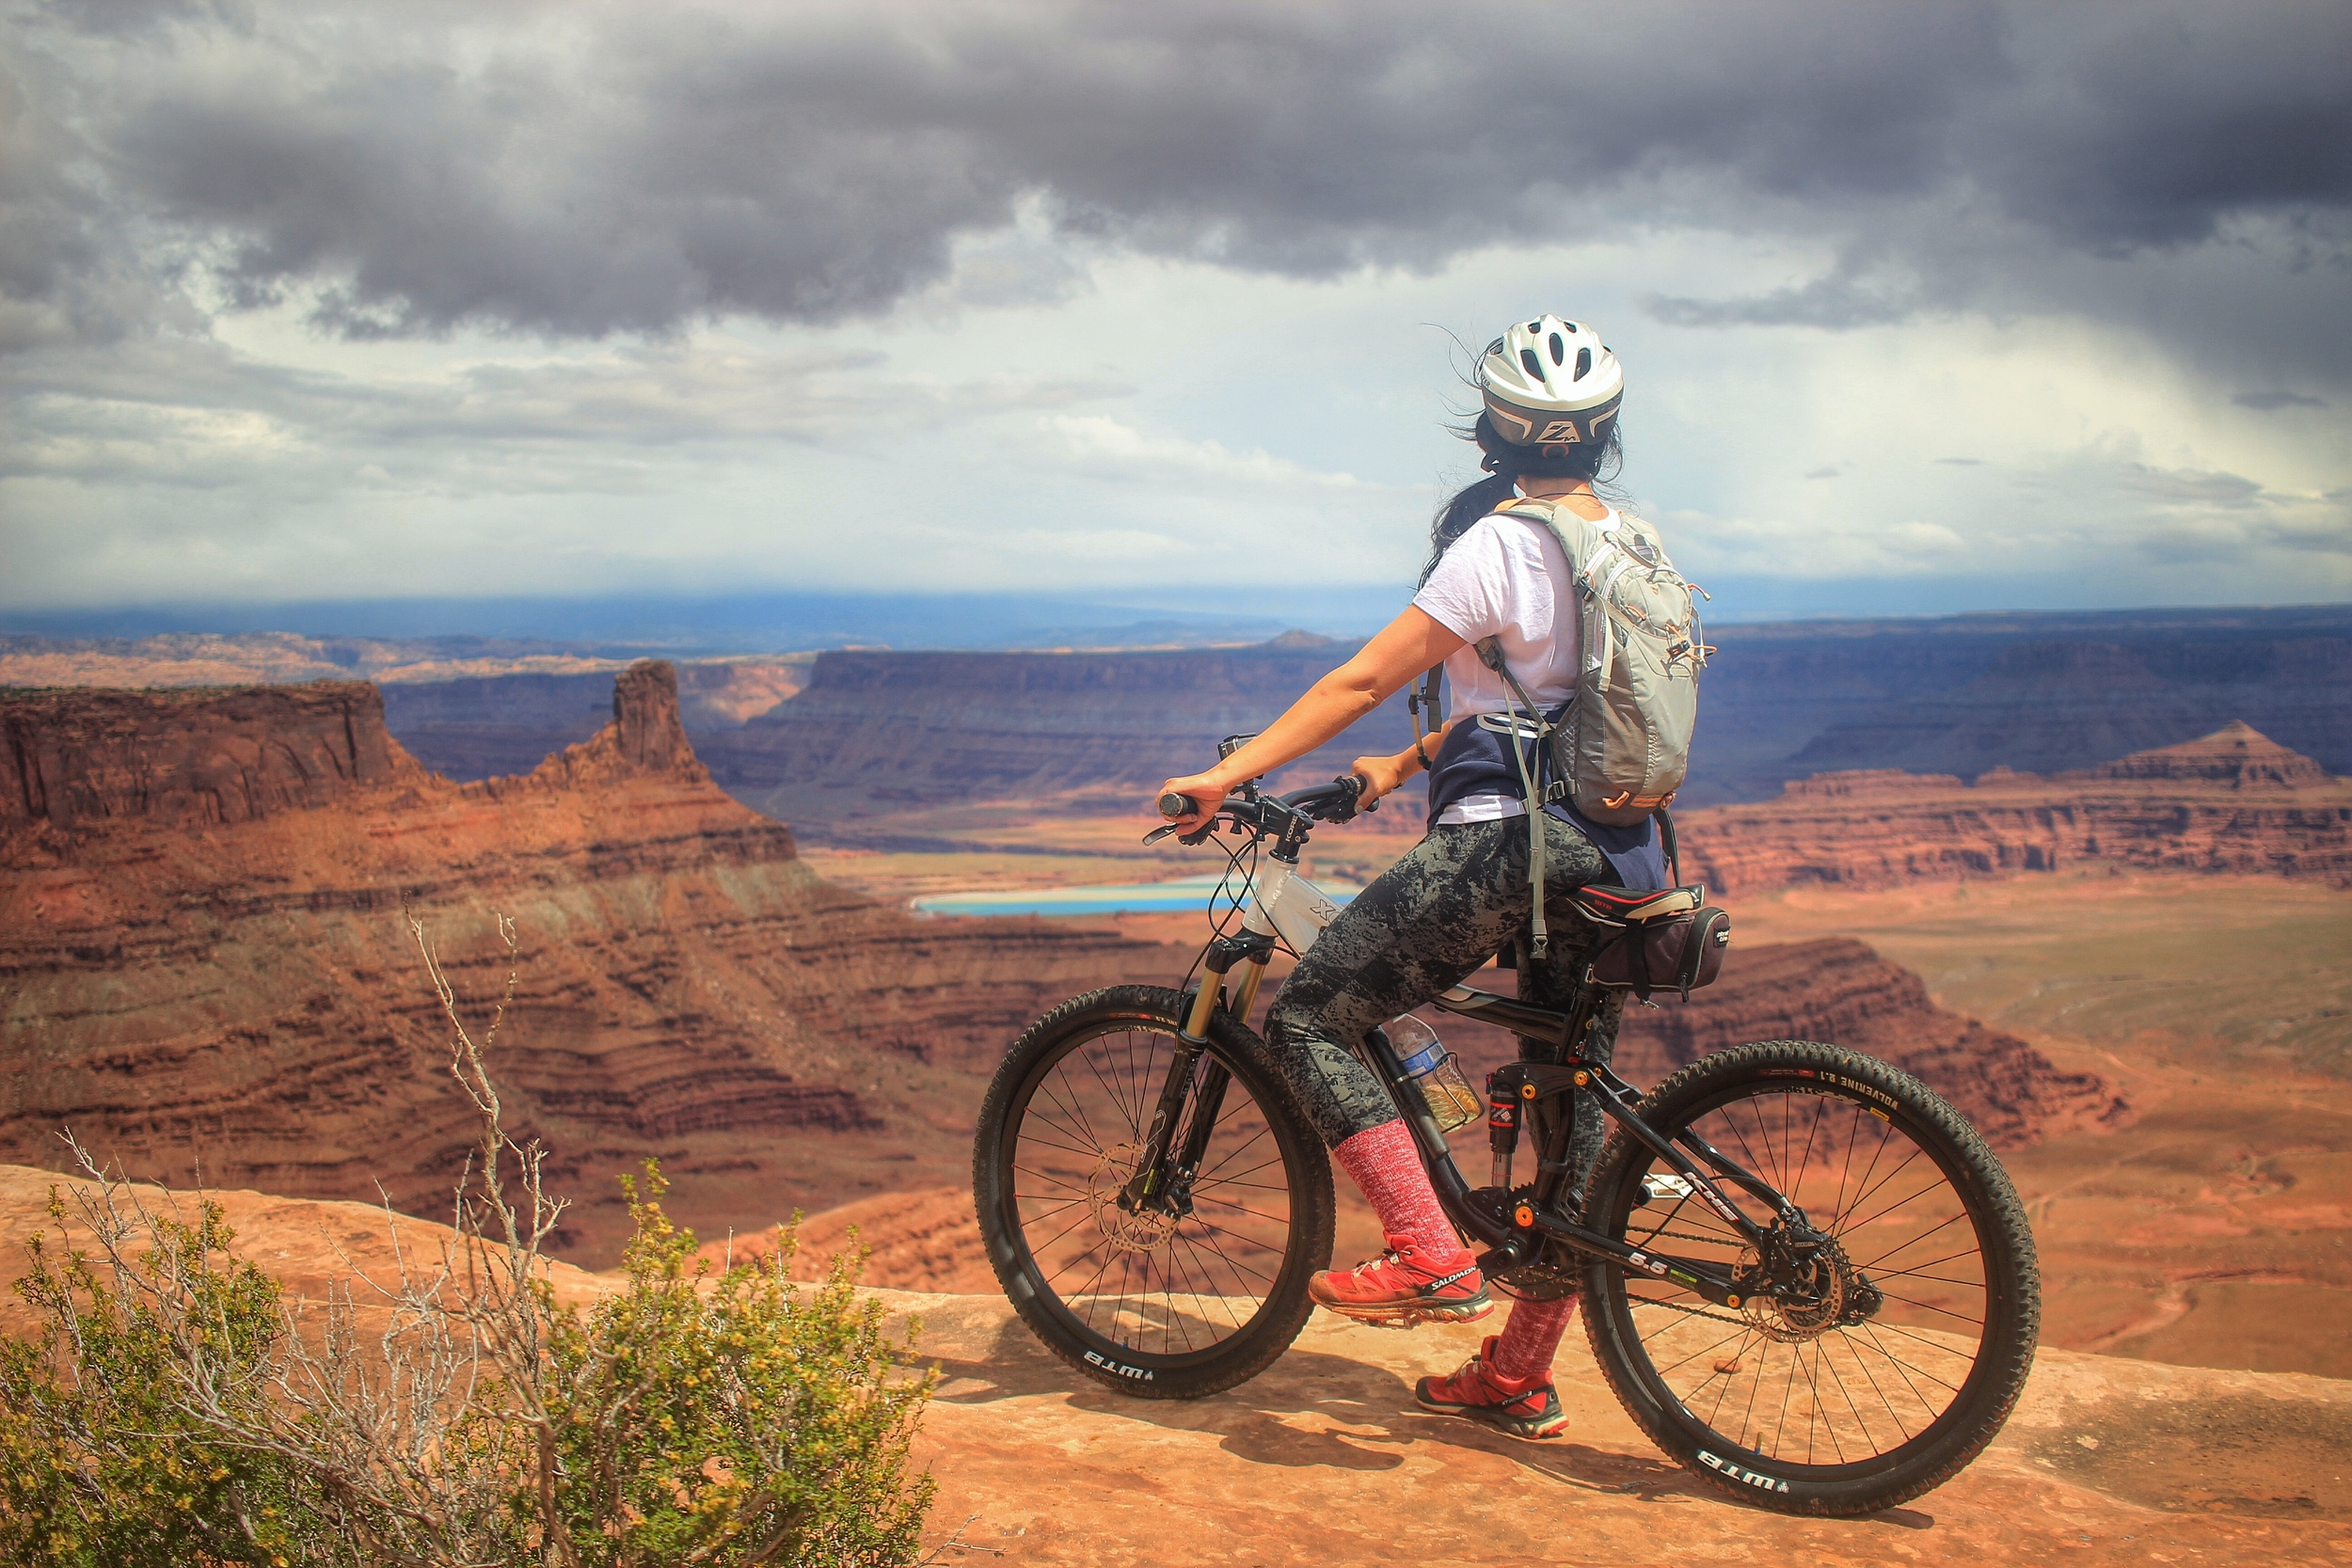 Switch up your outdoor routine by trying Mt. Biking along the breathtaking views of Dead Horse Point's Rim.